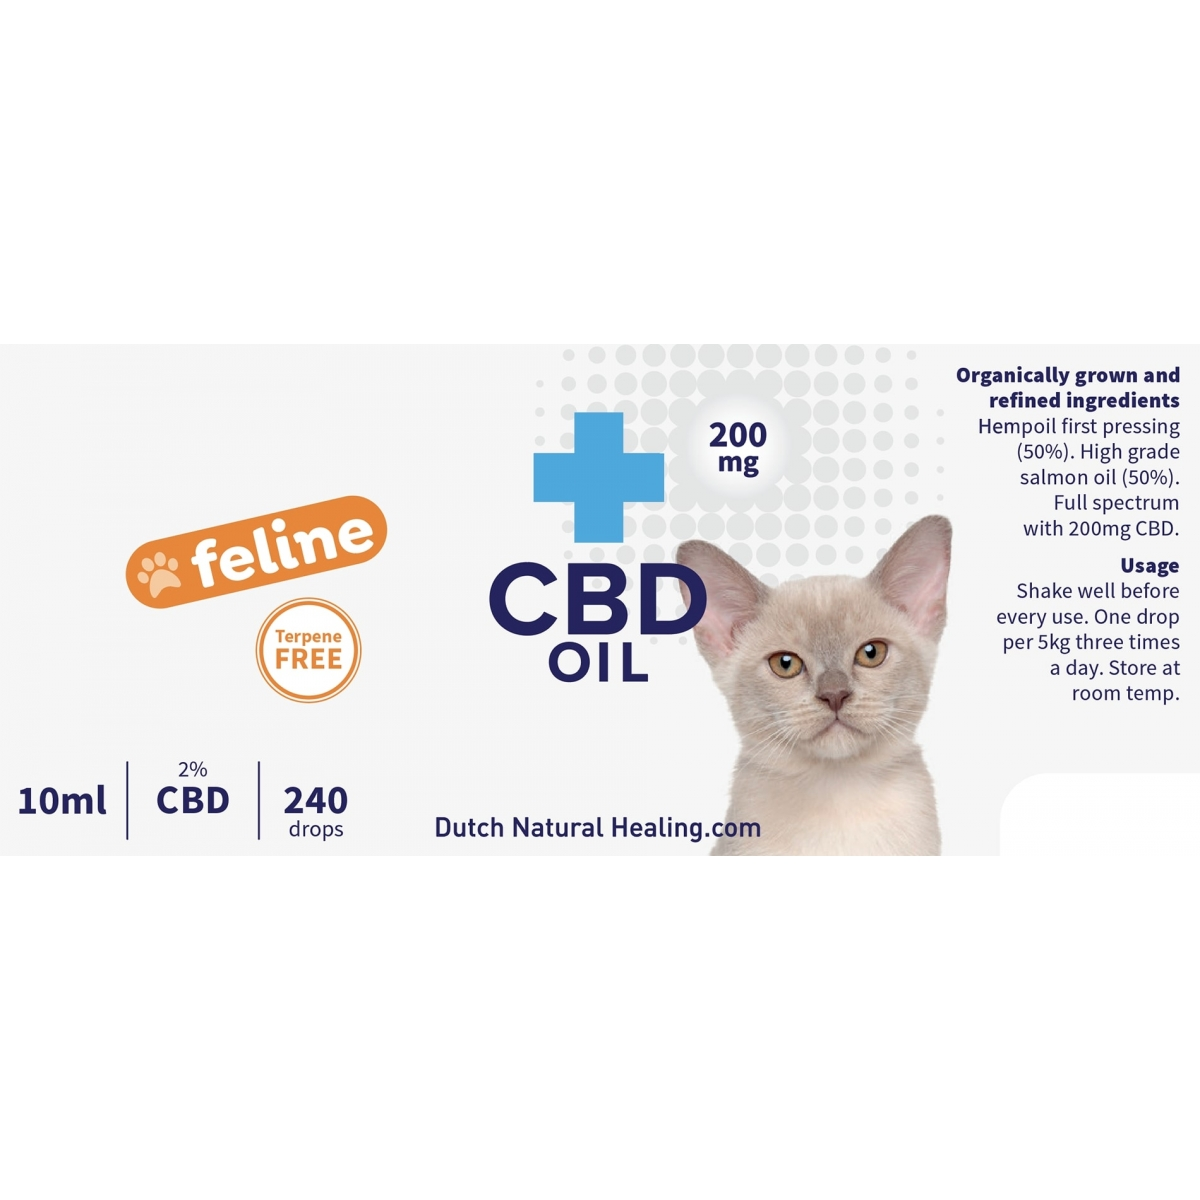 CBD oil for cats 10ml - 2% (200mg)